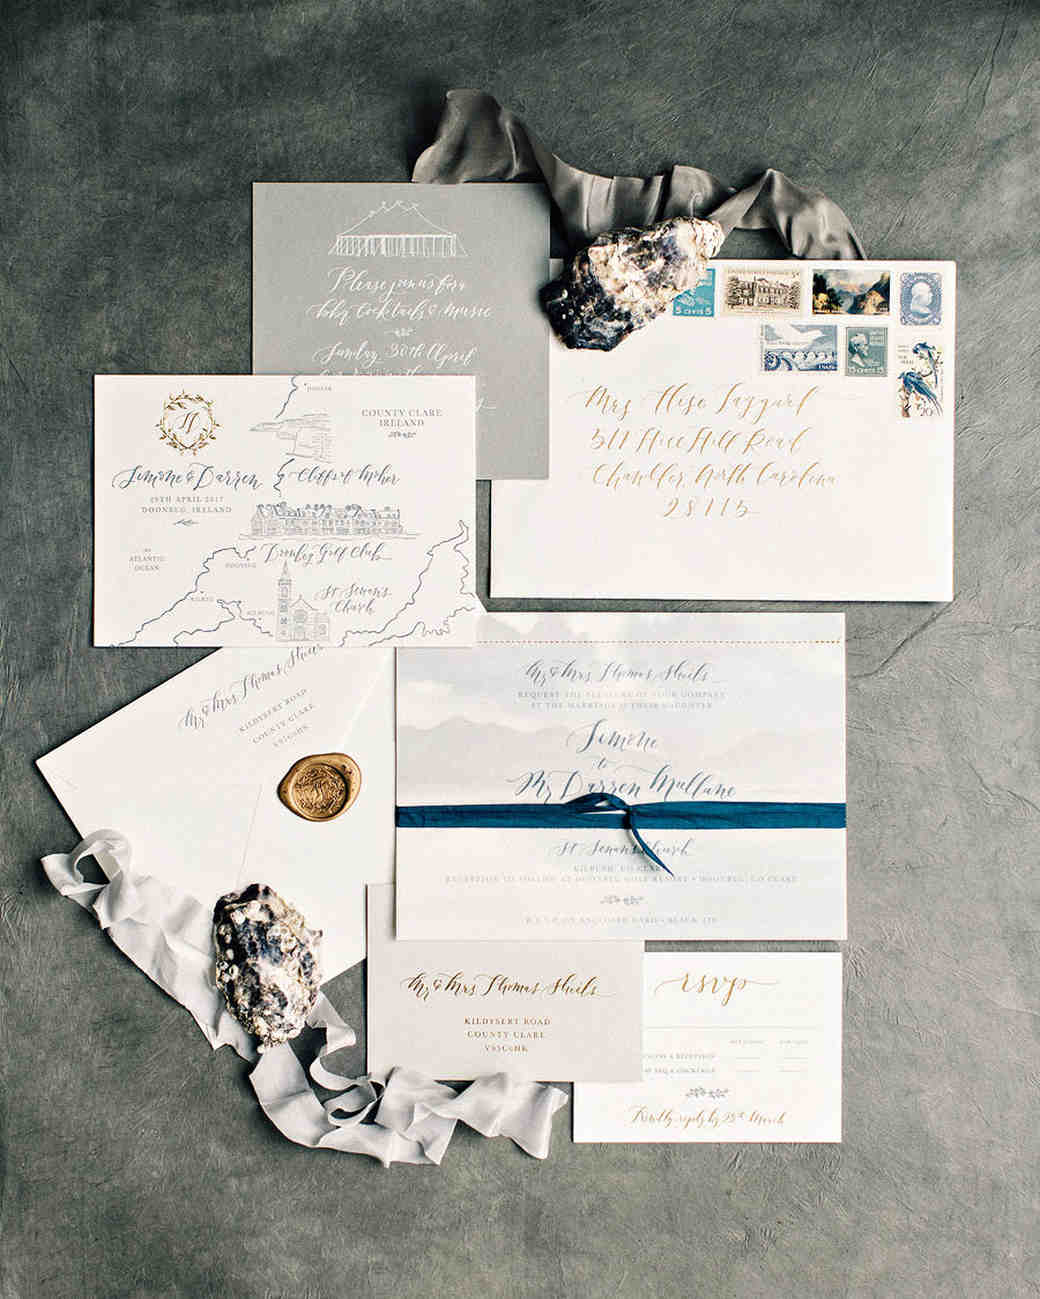 simone darren wedding ireland stationery